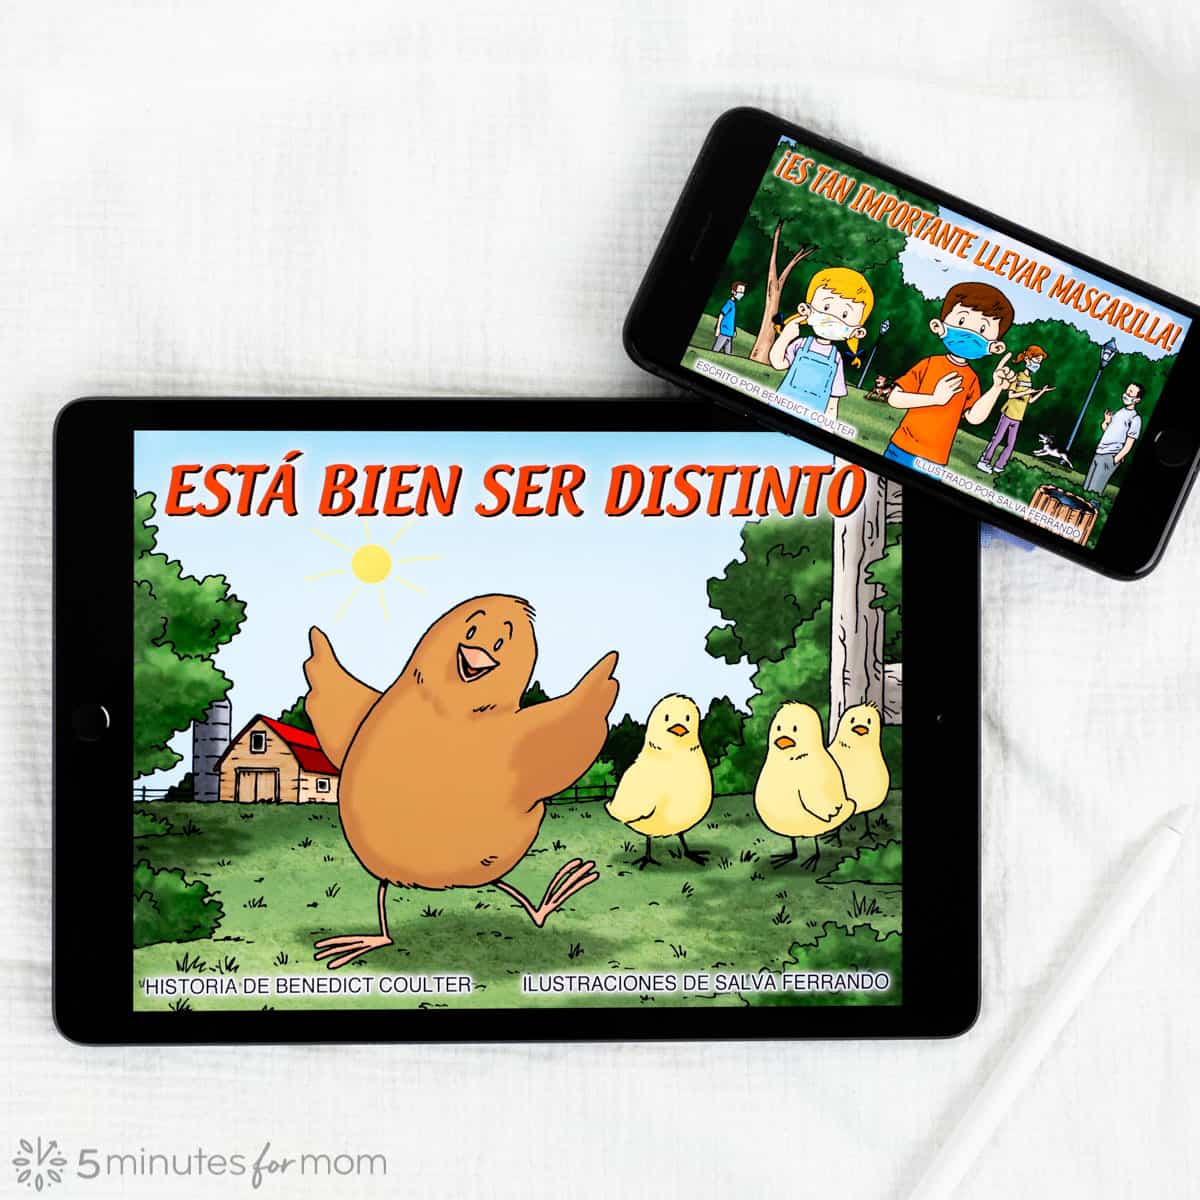 iPad and iPhone showing childrens books in Spanish and English